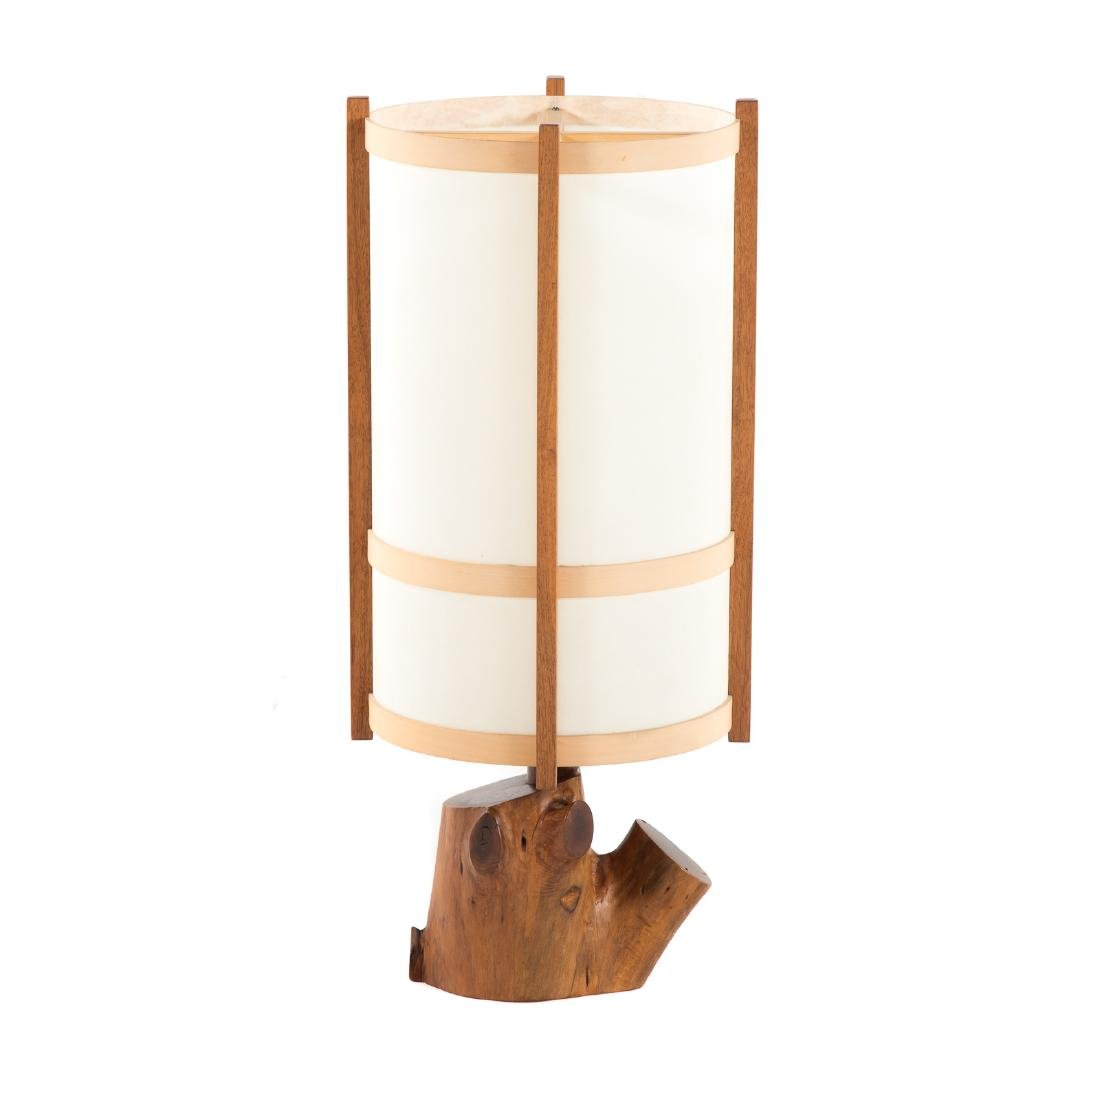 George Nakashima Table Lamp